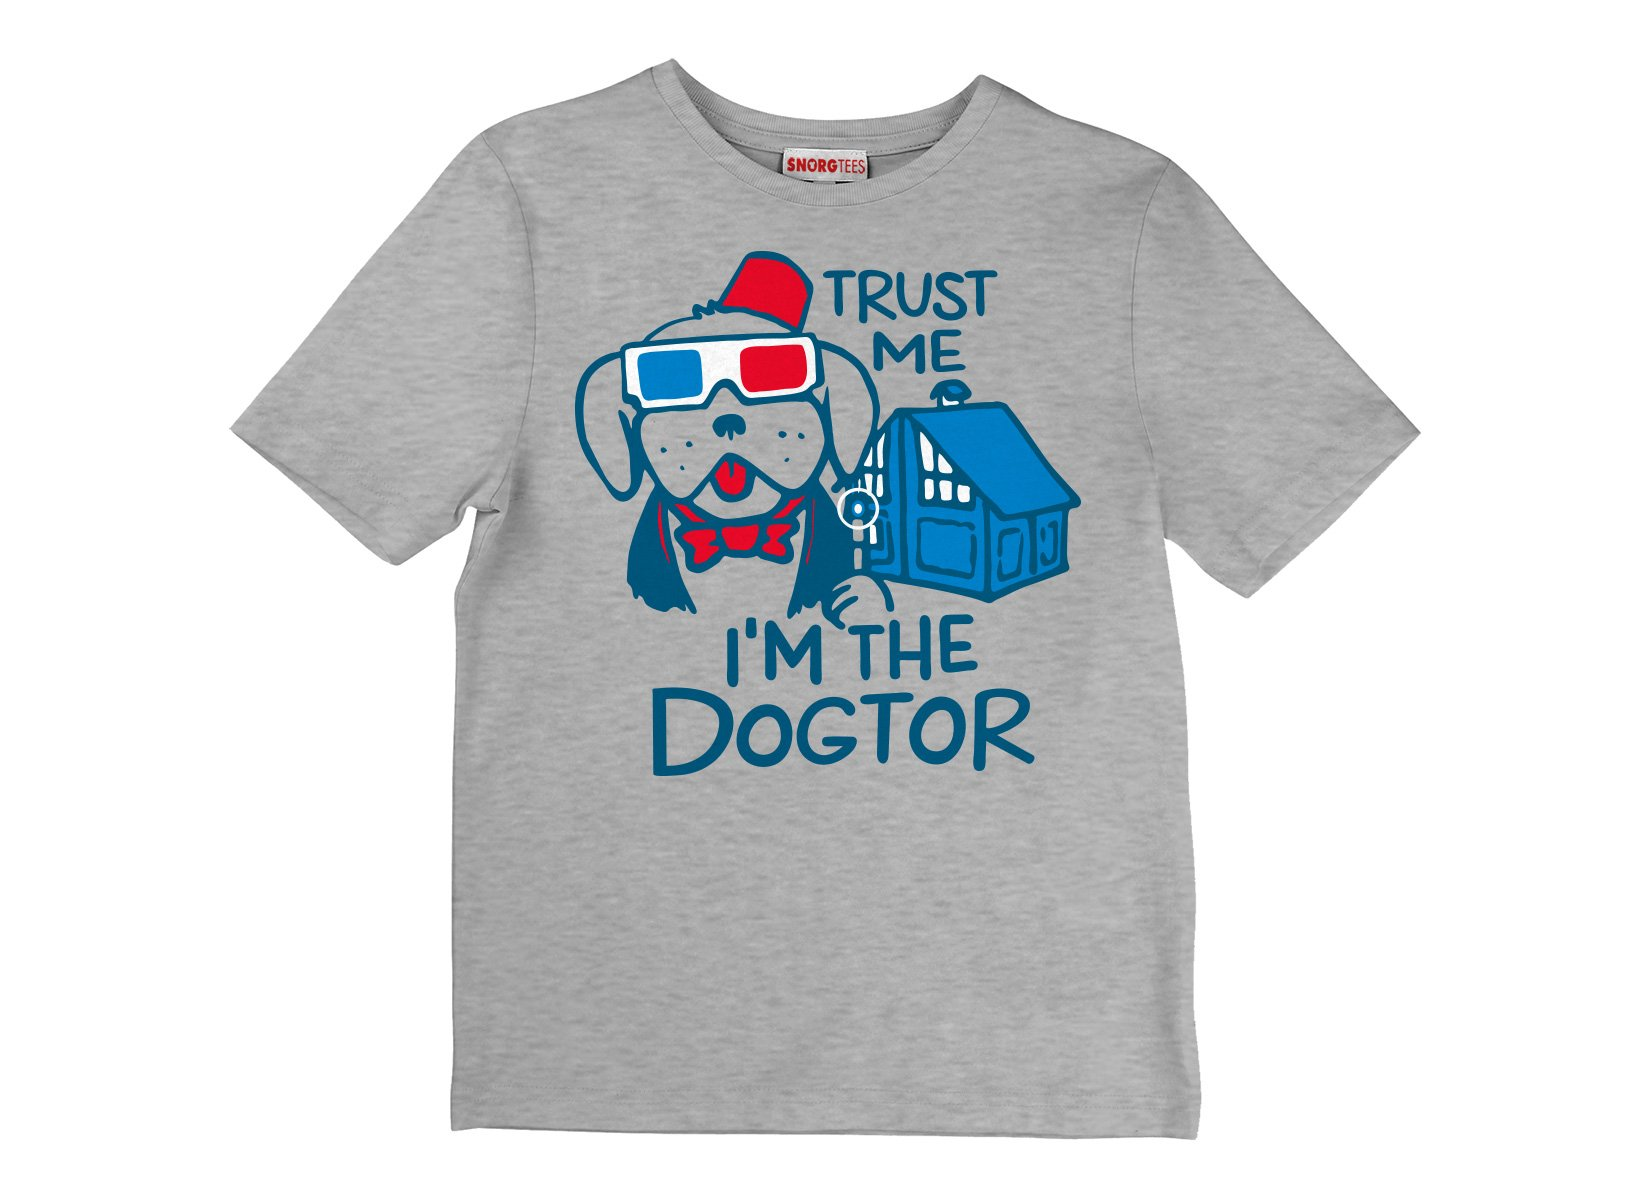 Trust Me, I'm The Dogtor on Kids T-Shirt